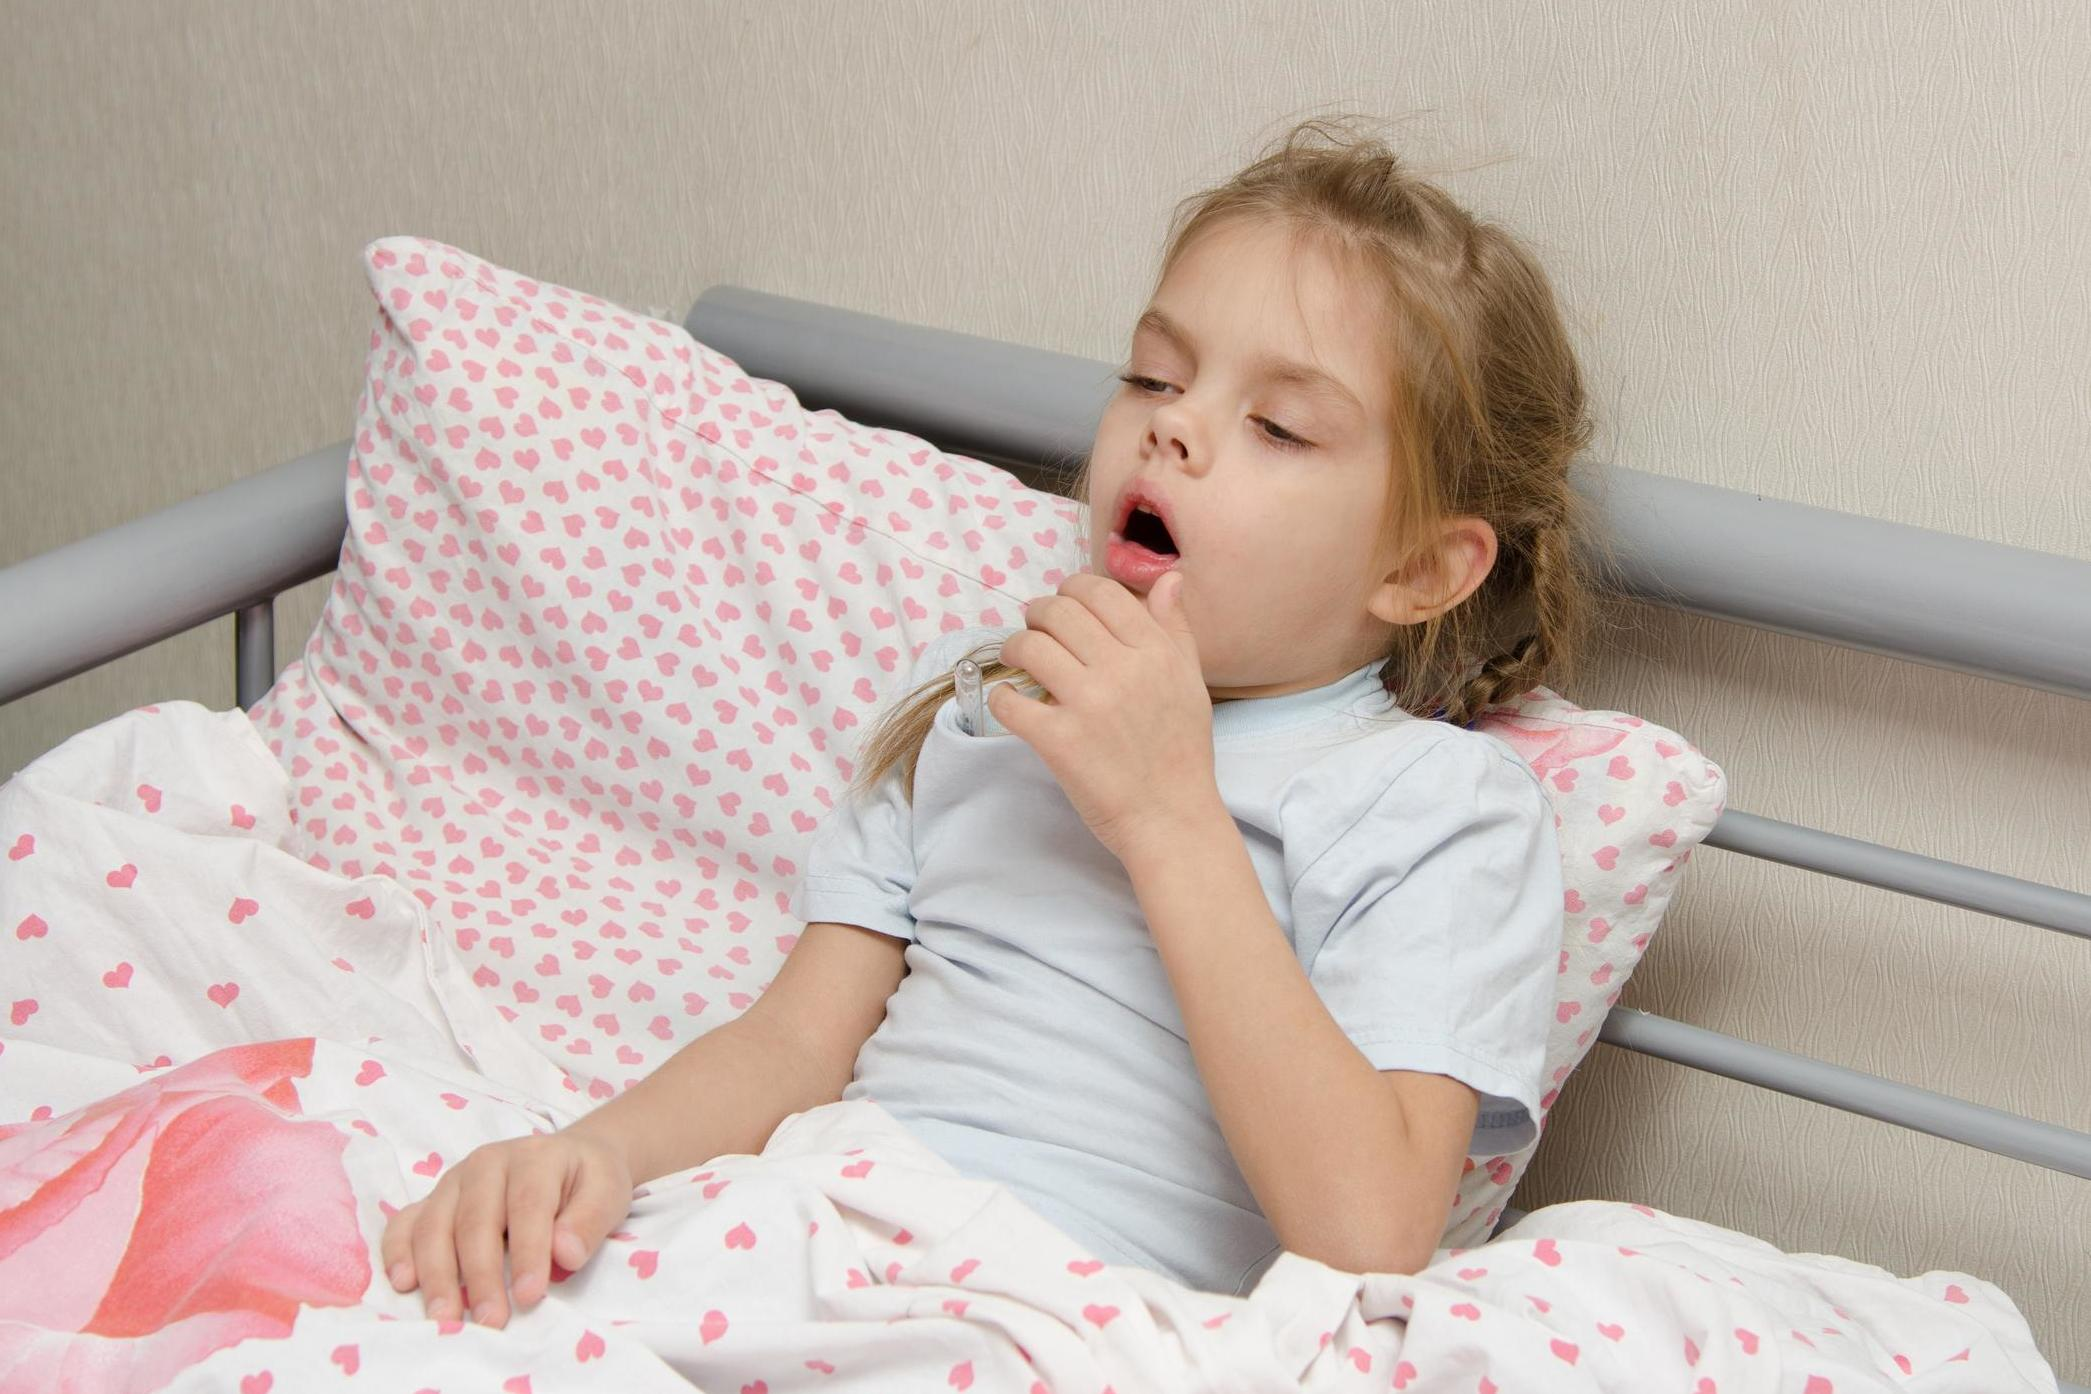 How to treat false croup in a child